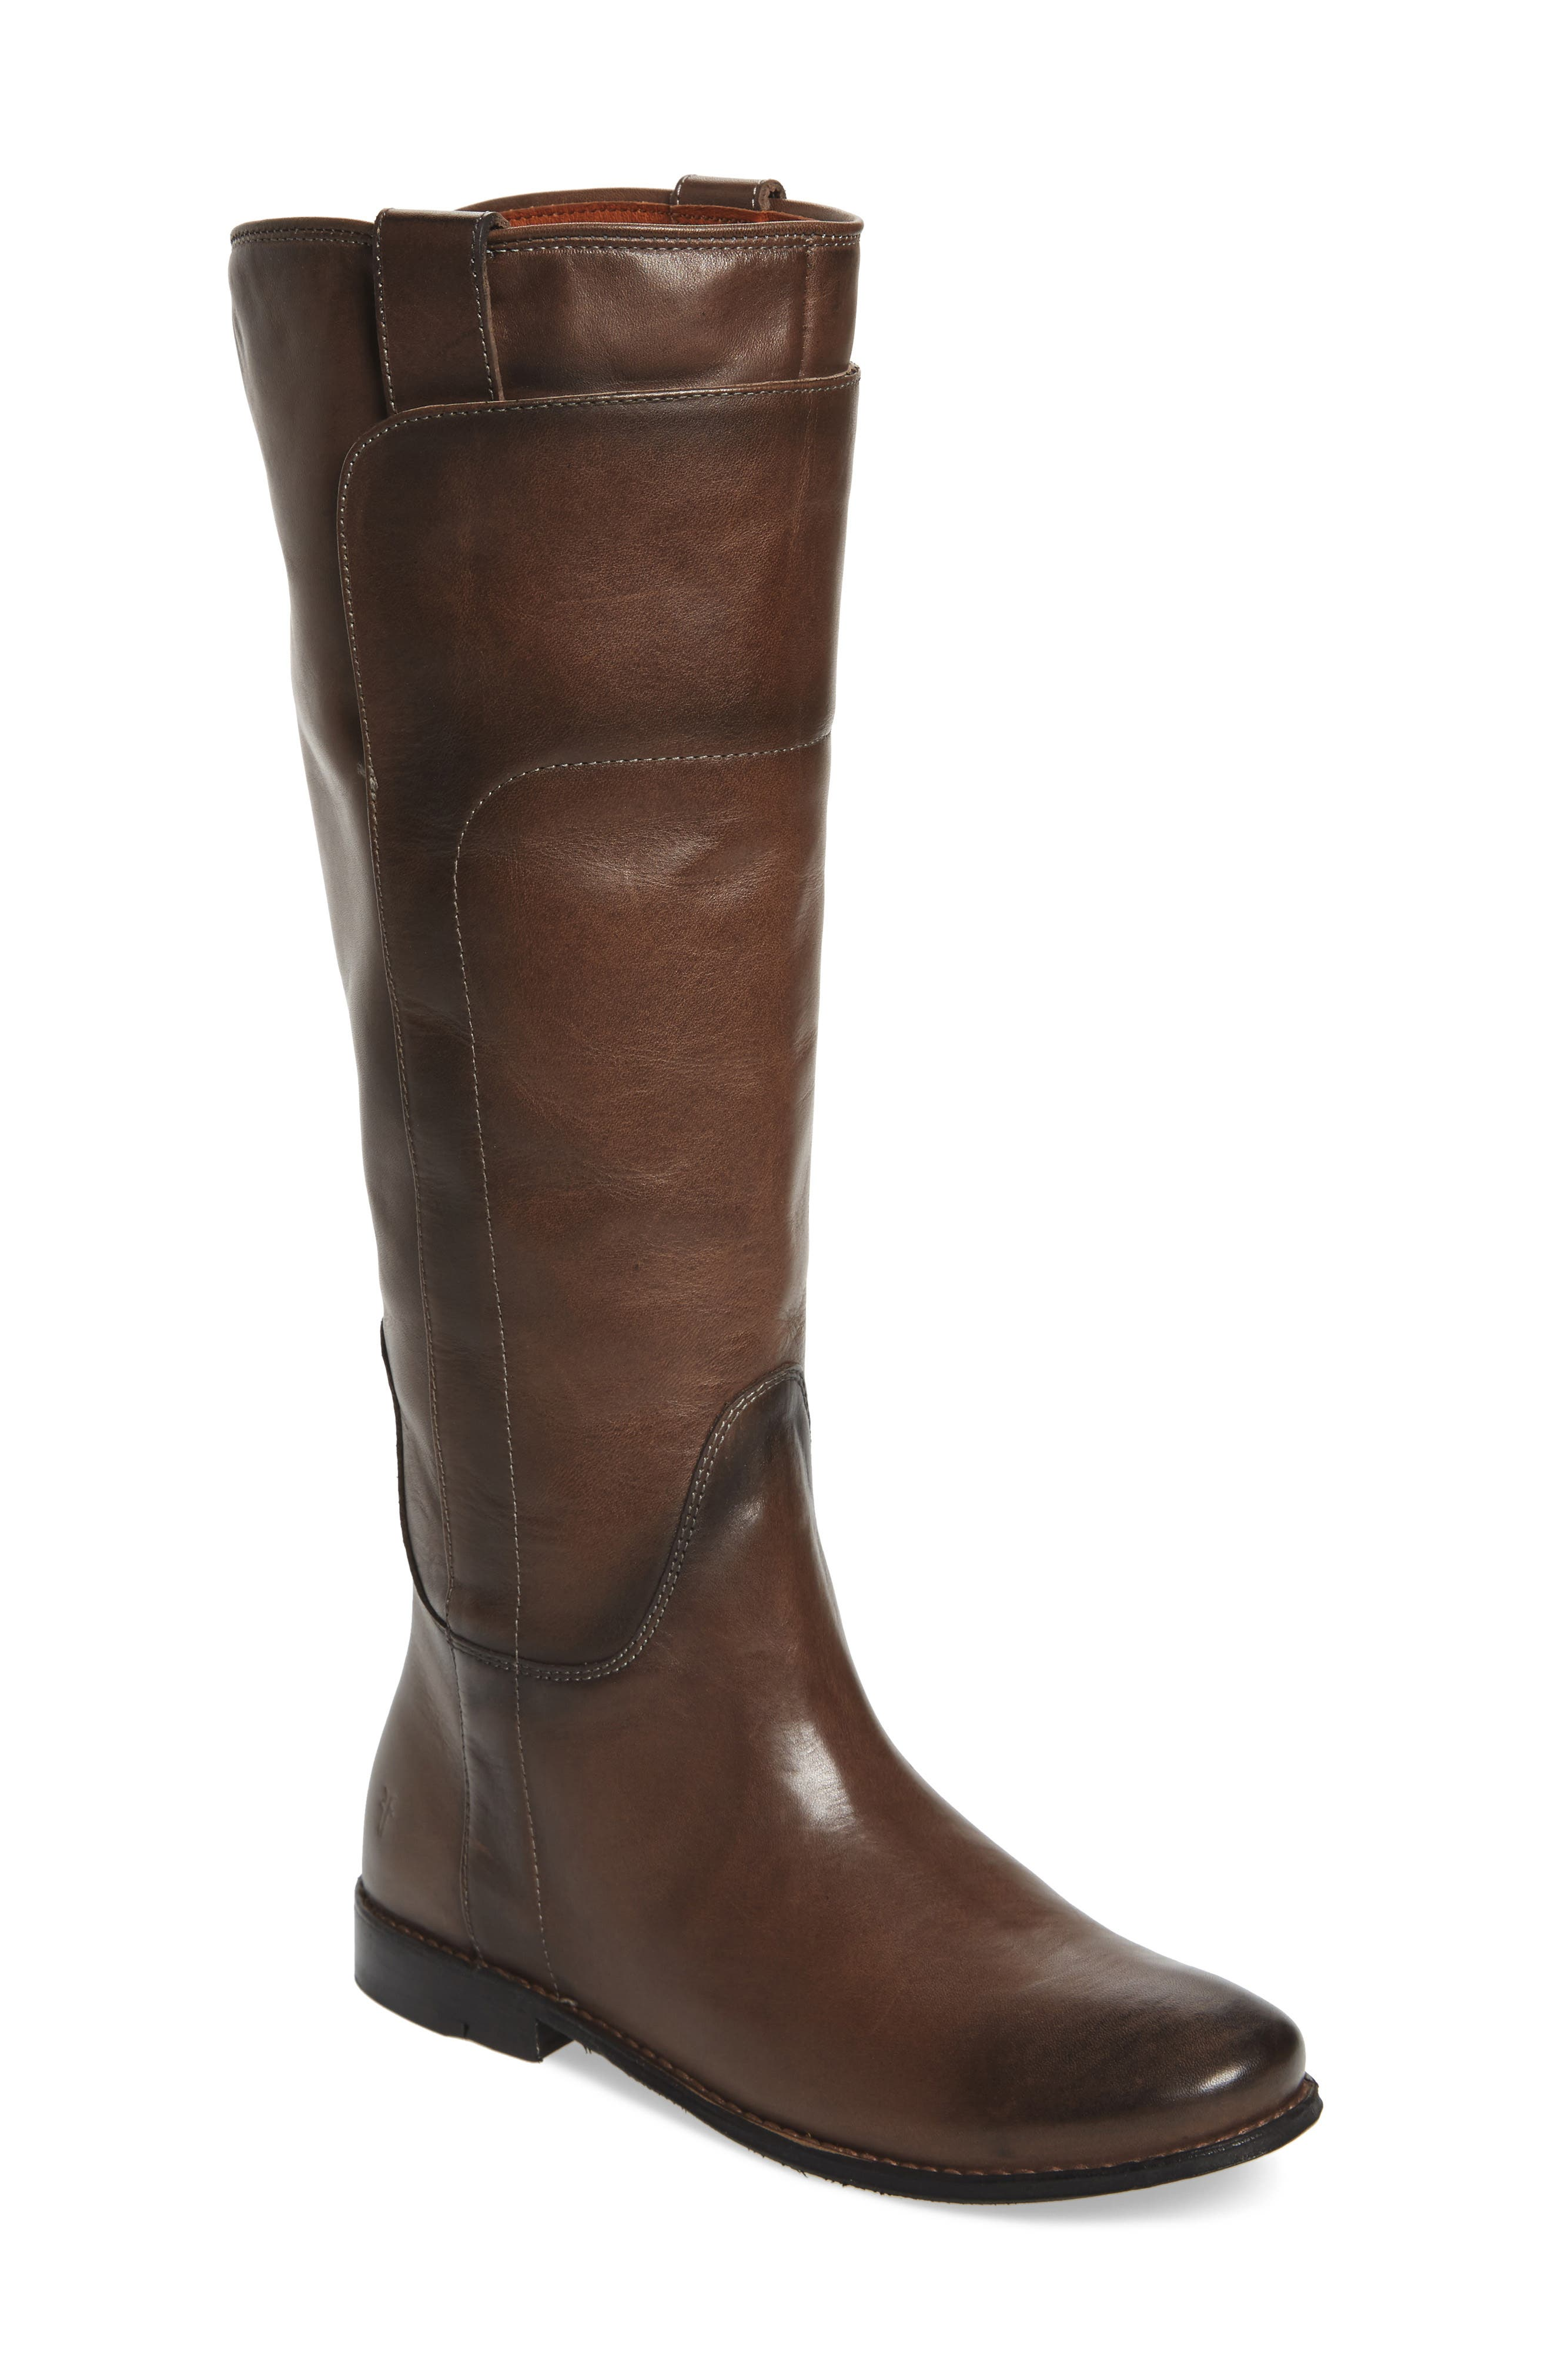 Paige Tall Riding Boot,                             Main thumbnail 1, color,                             Smoke